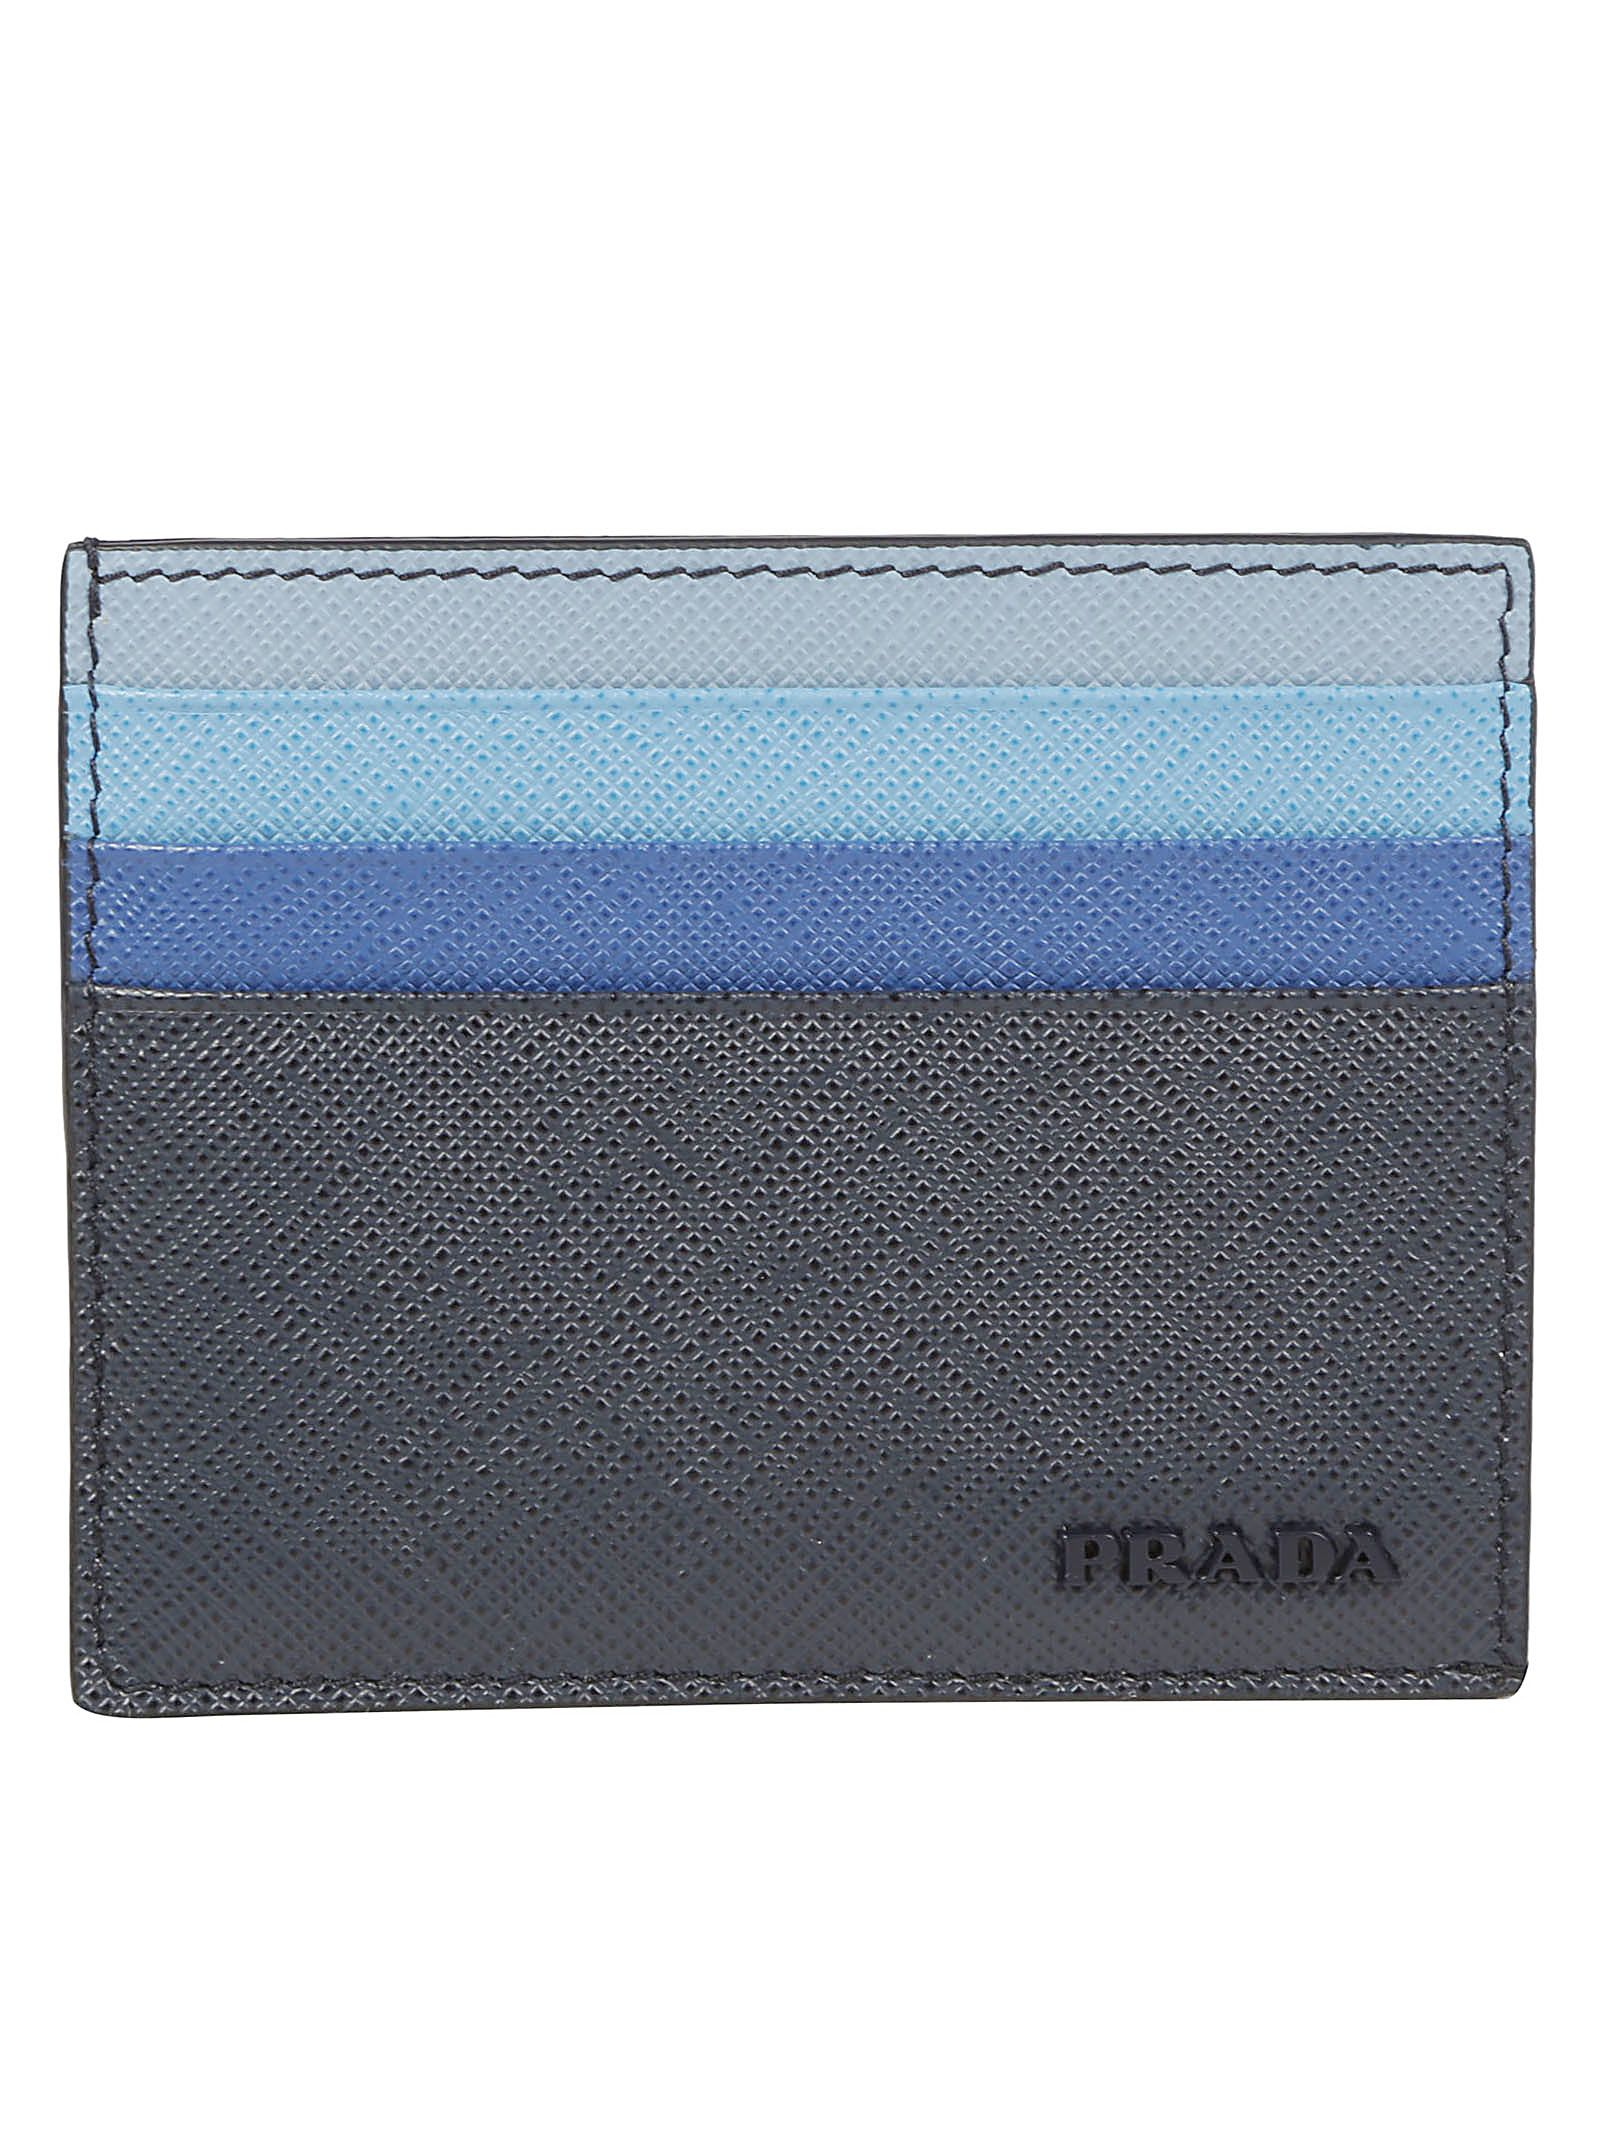 bbd1821f5816 Prada Prada Card Holder - Baltico - 10954793 | italist